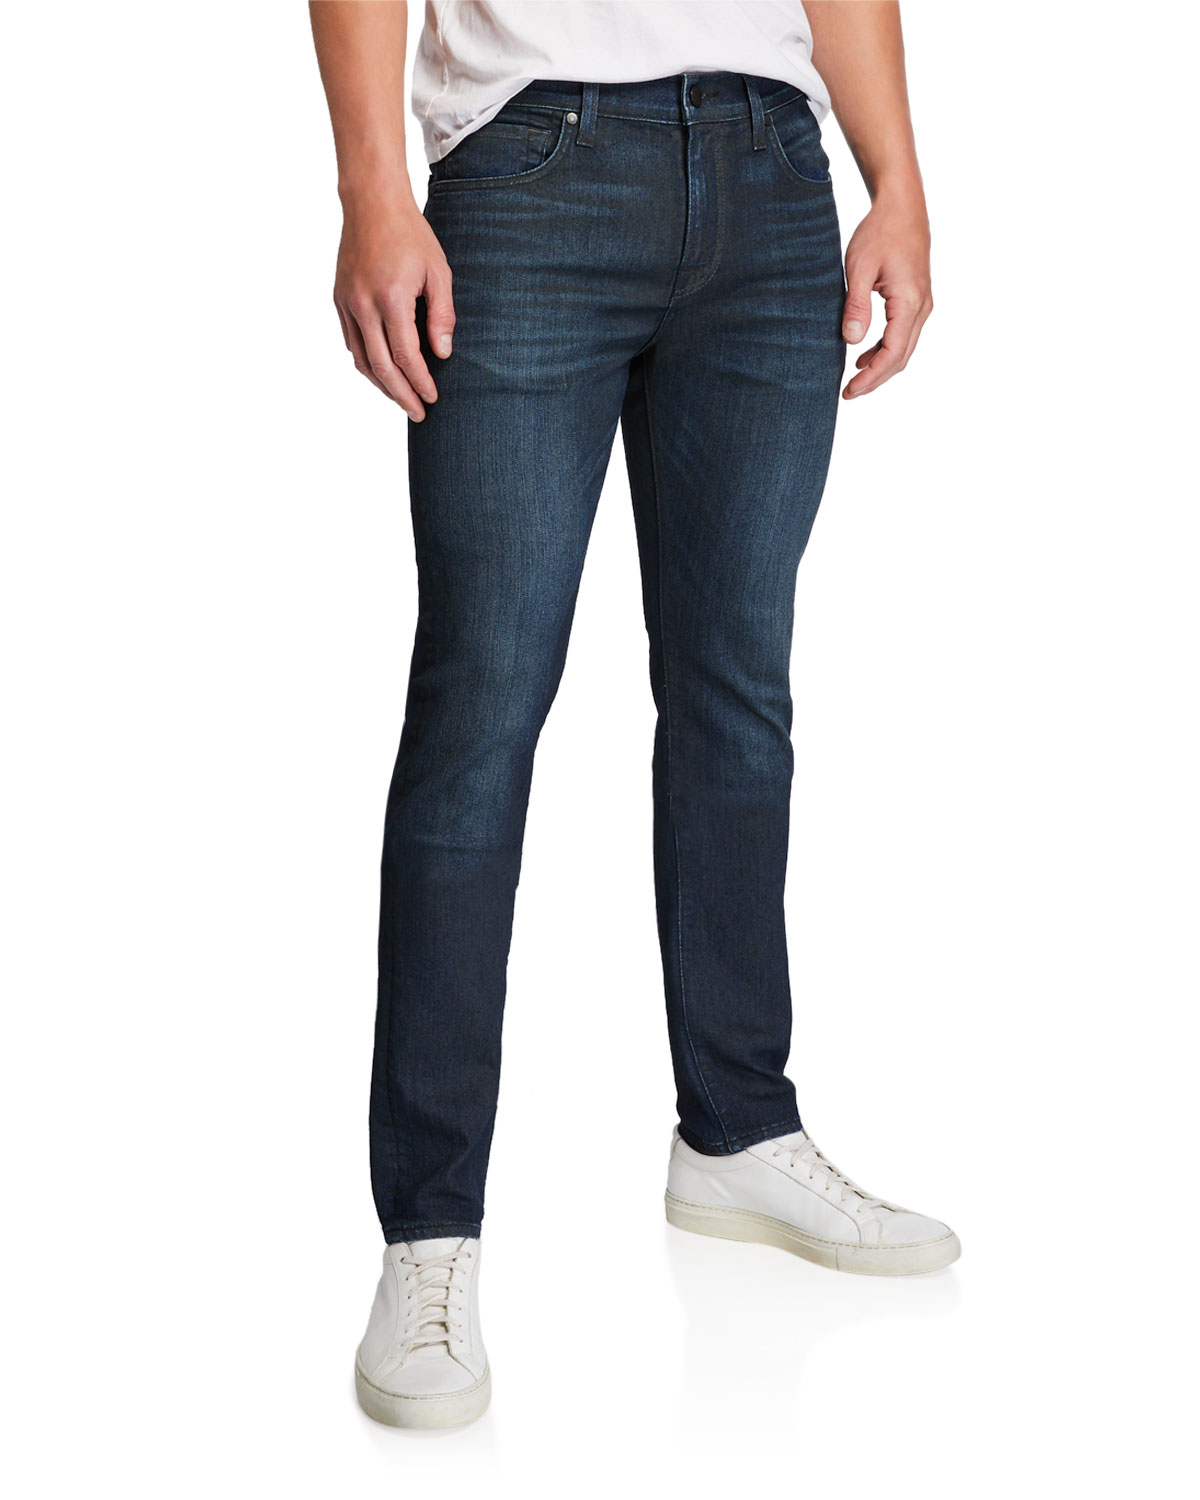 7 for all mankind Men's Paxtyn Dark-Wash Skinny Jeans